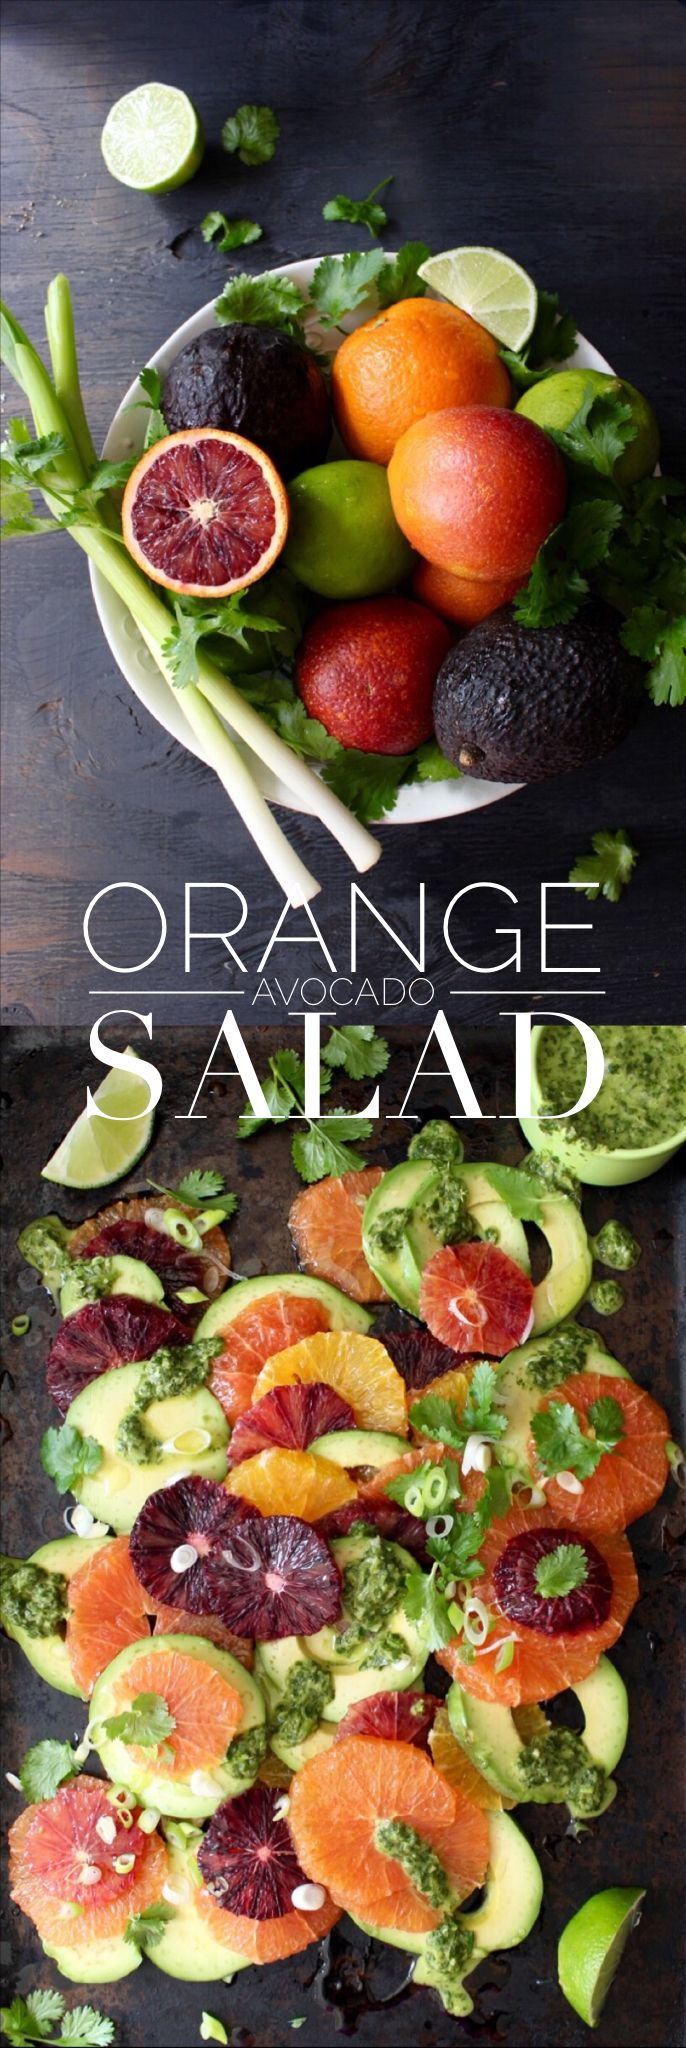 Orange Avocado Salad Recipe with Lime Dressing | CiaoFlorentina.com #CAonMyPlate #CultivateCA Learn more at Cultivate California: http://clvr.li/1Pj1Y7O